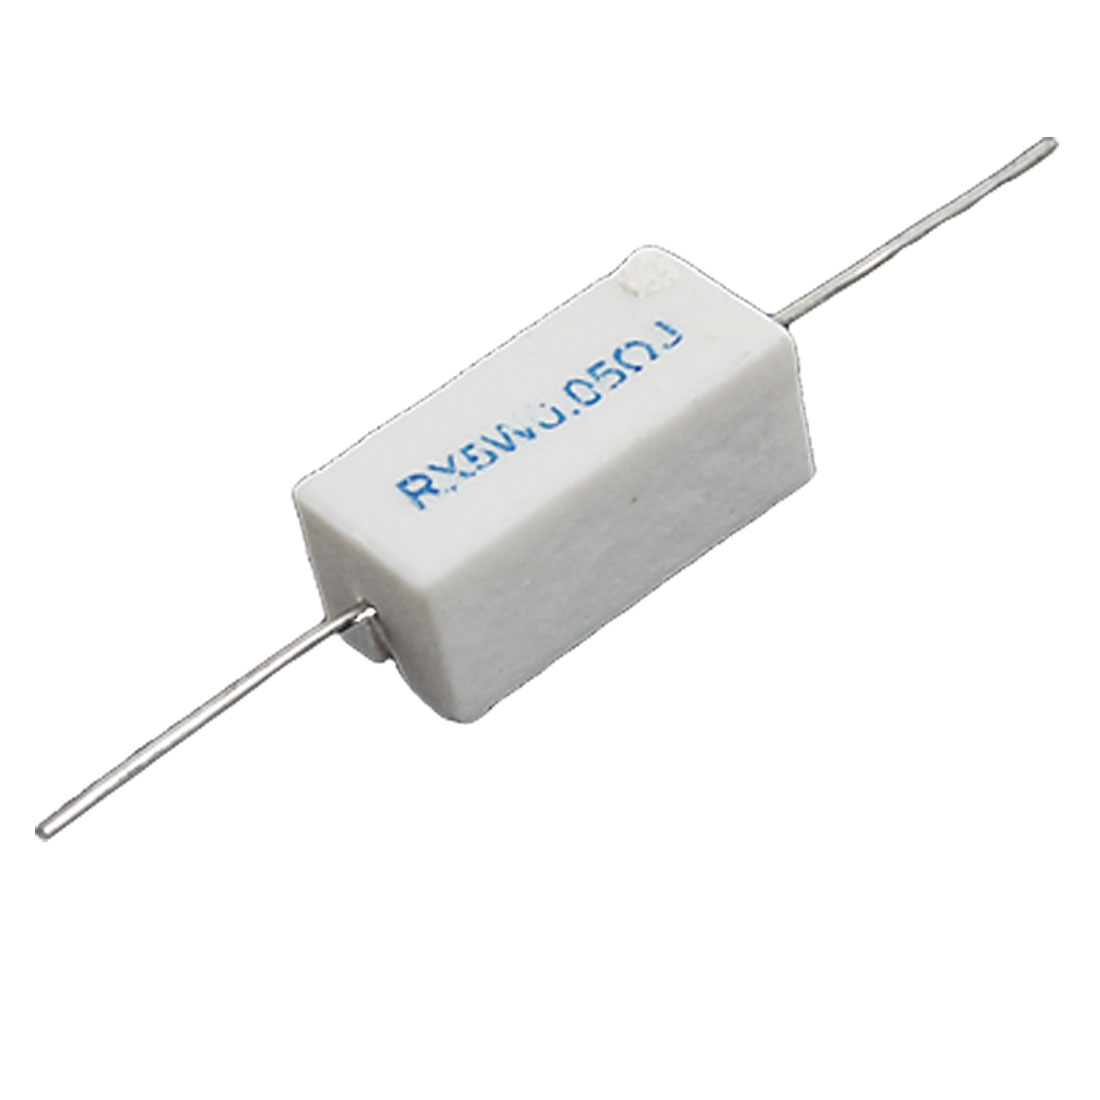 0.05 R Ohm 5% 5W Watt Ceramic Cement Power Resistor 10 Pcs